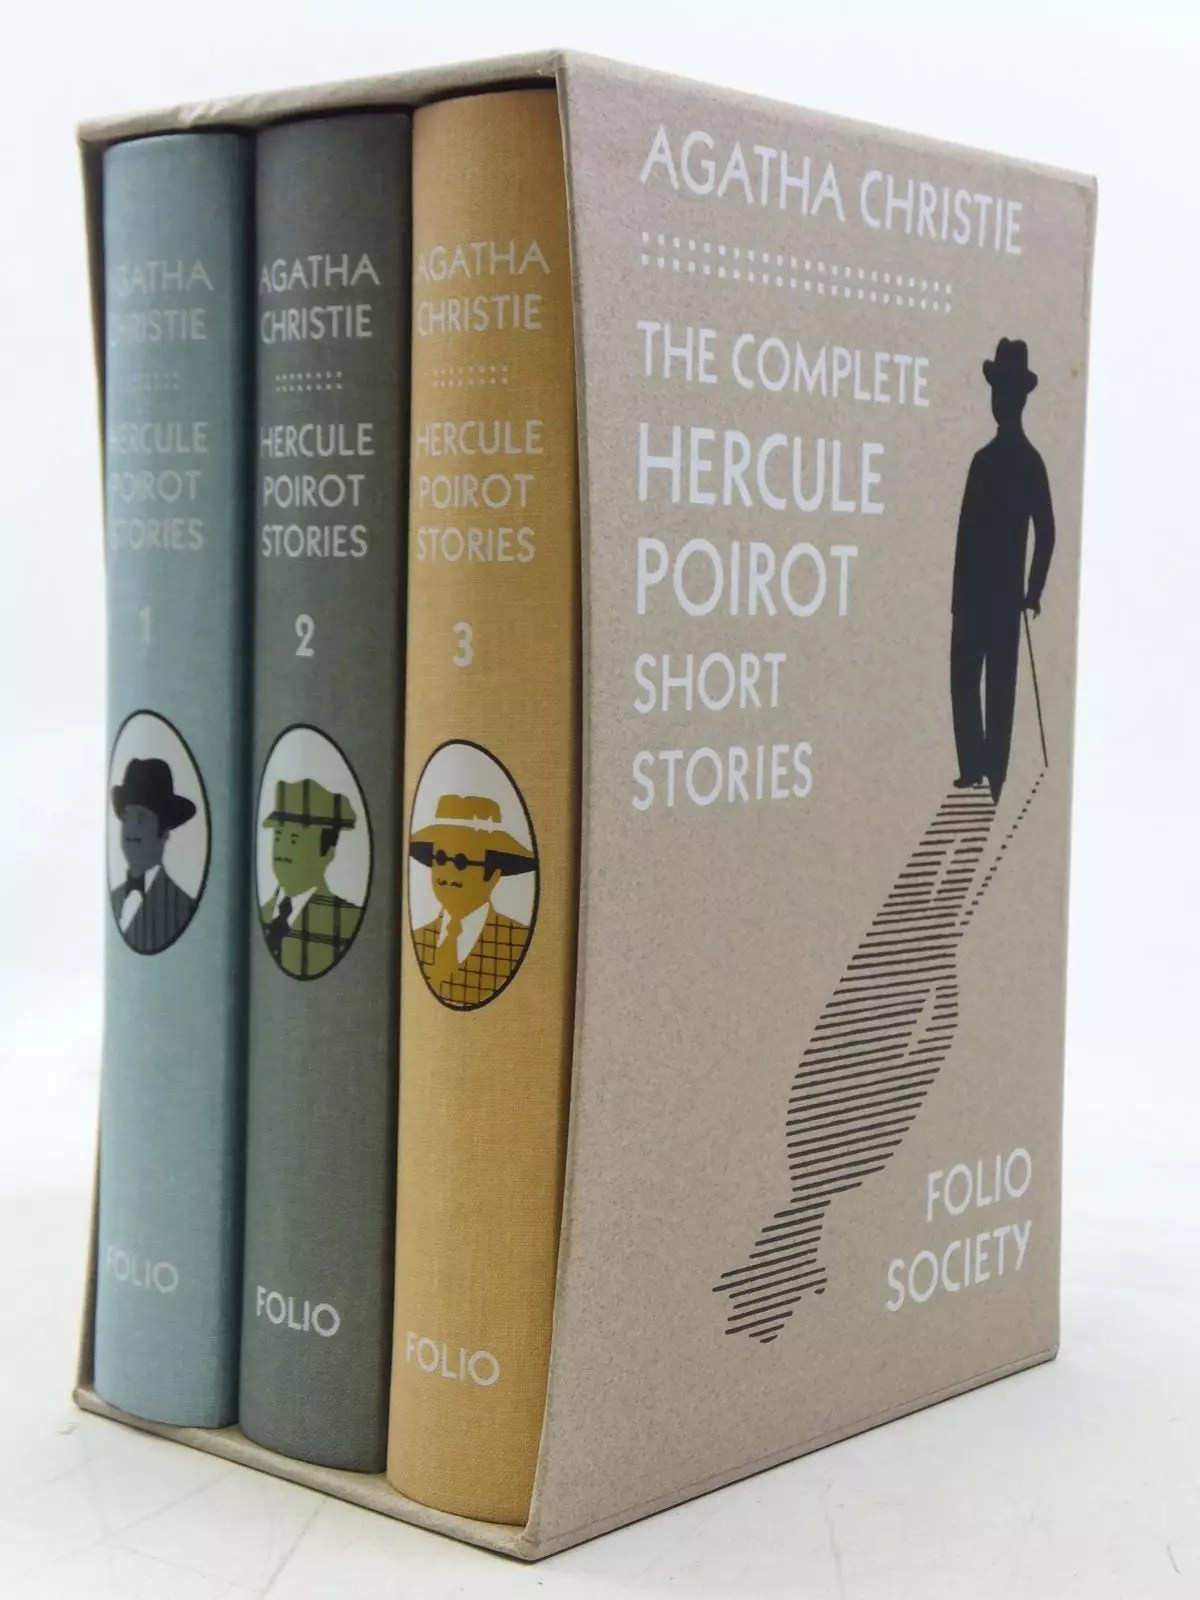 agatha christie FS complete hercule poirot short stories